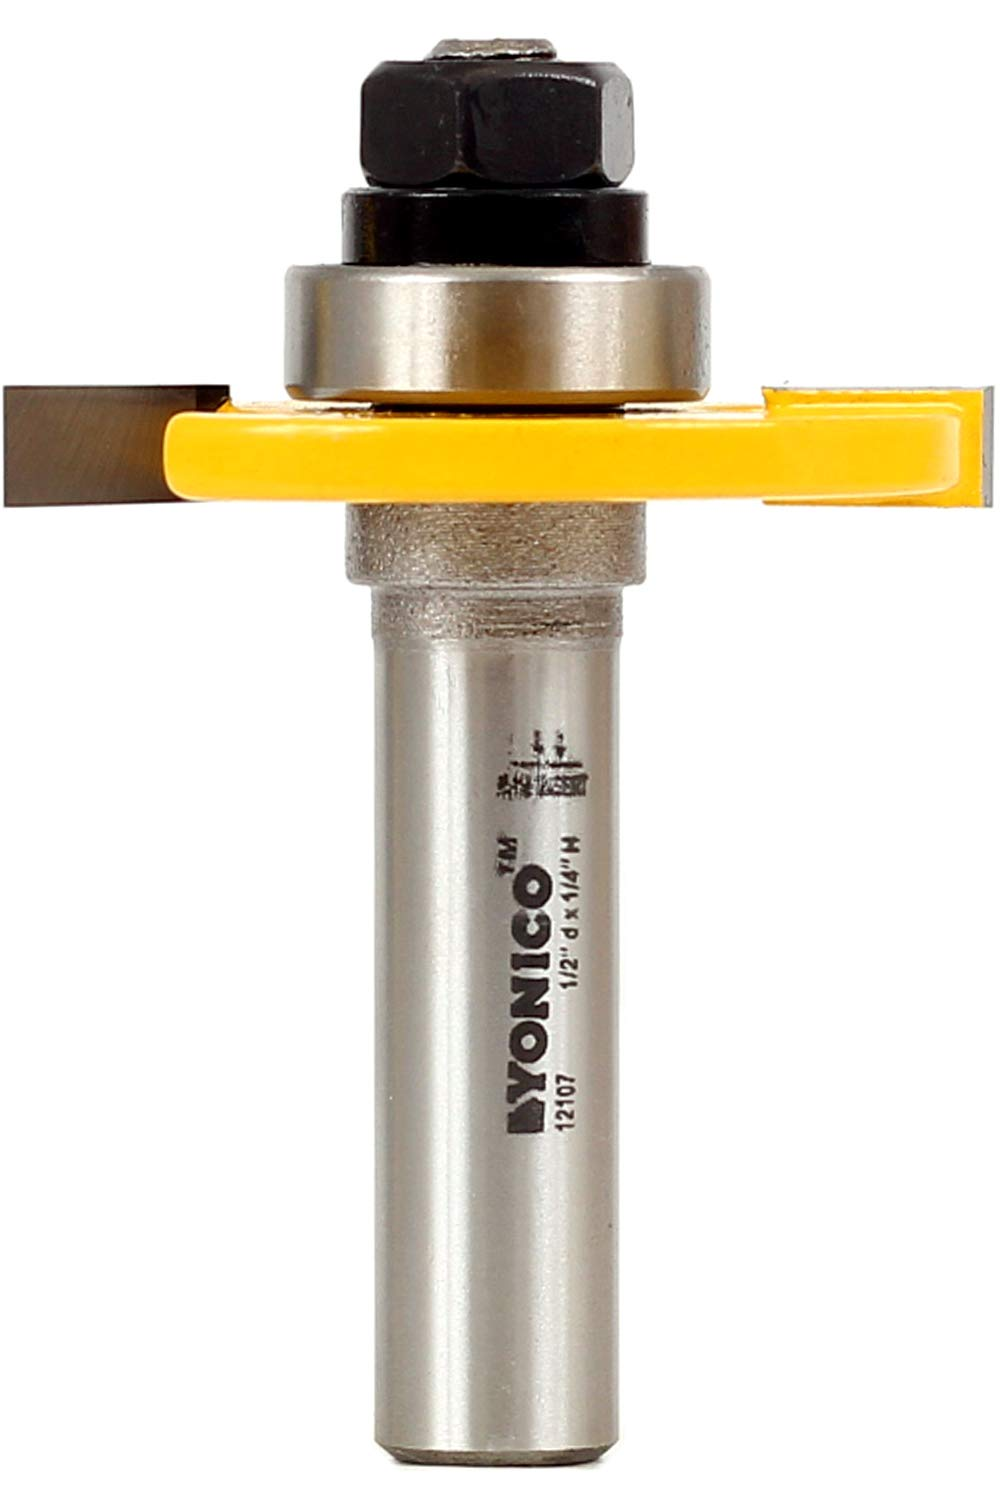 Yonico Router 55% OFF Bits Slotting Cutter 4-Inch 1 12107 Shank 2-Inch At the price